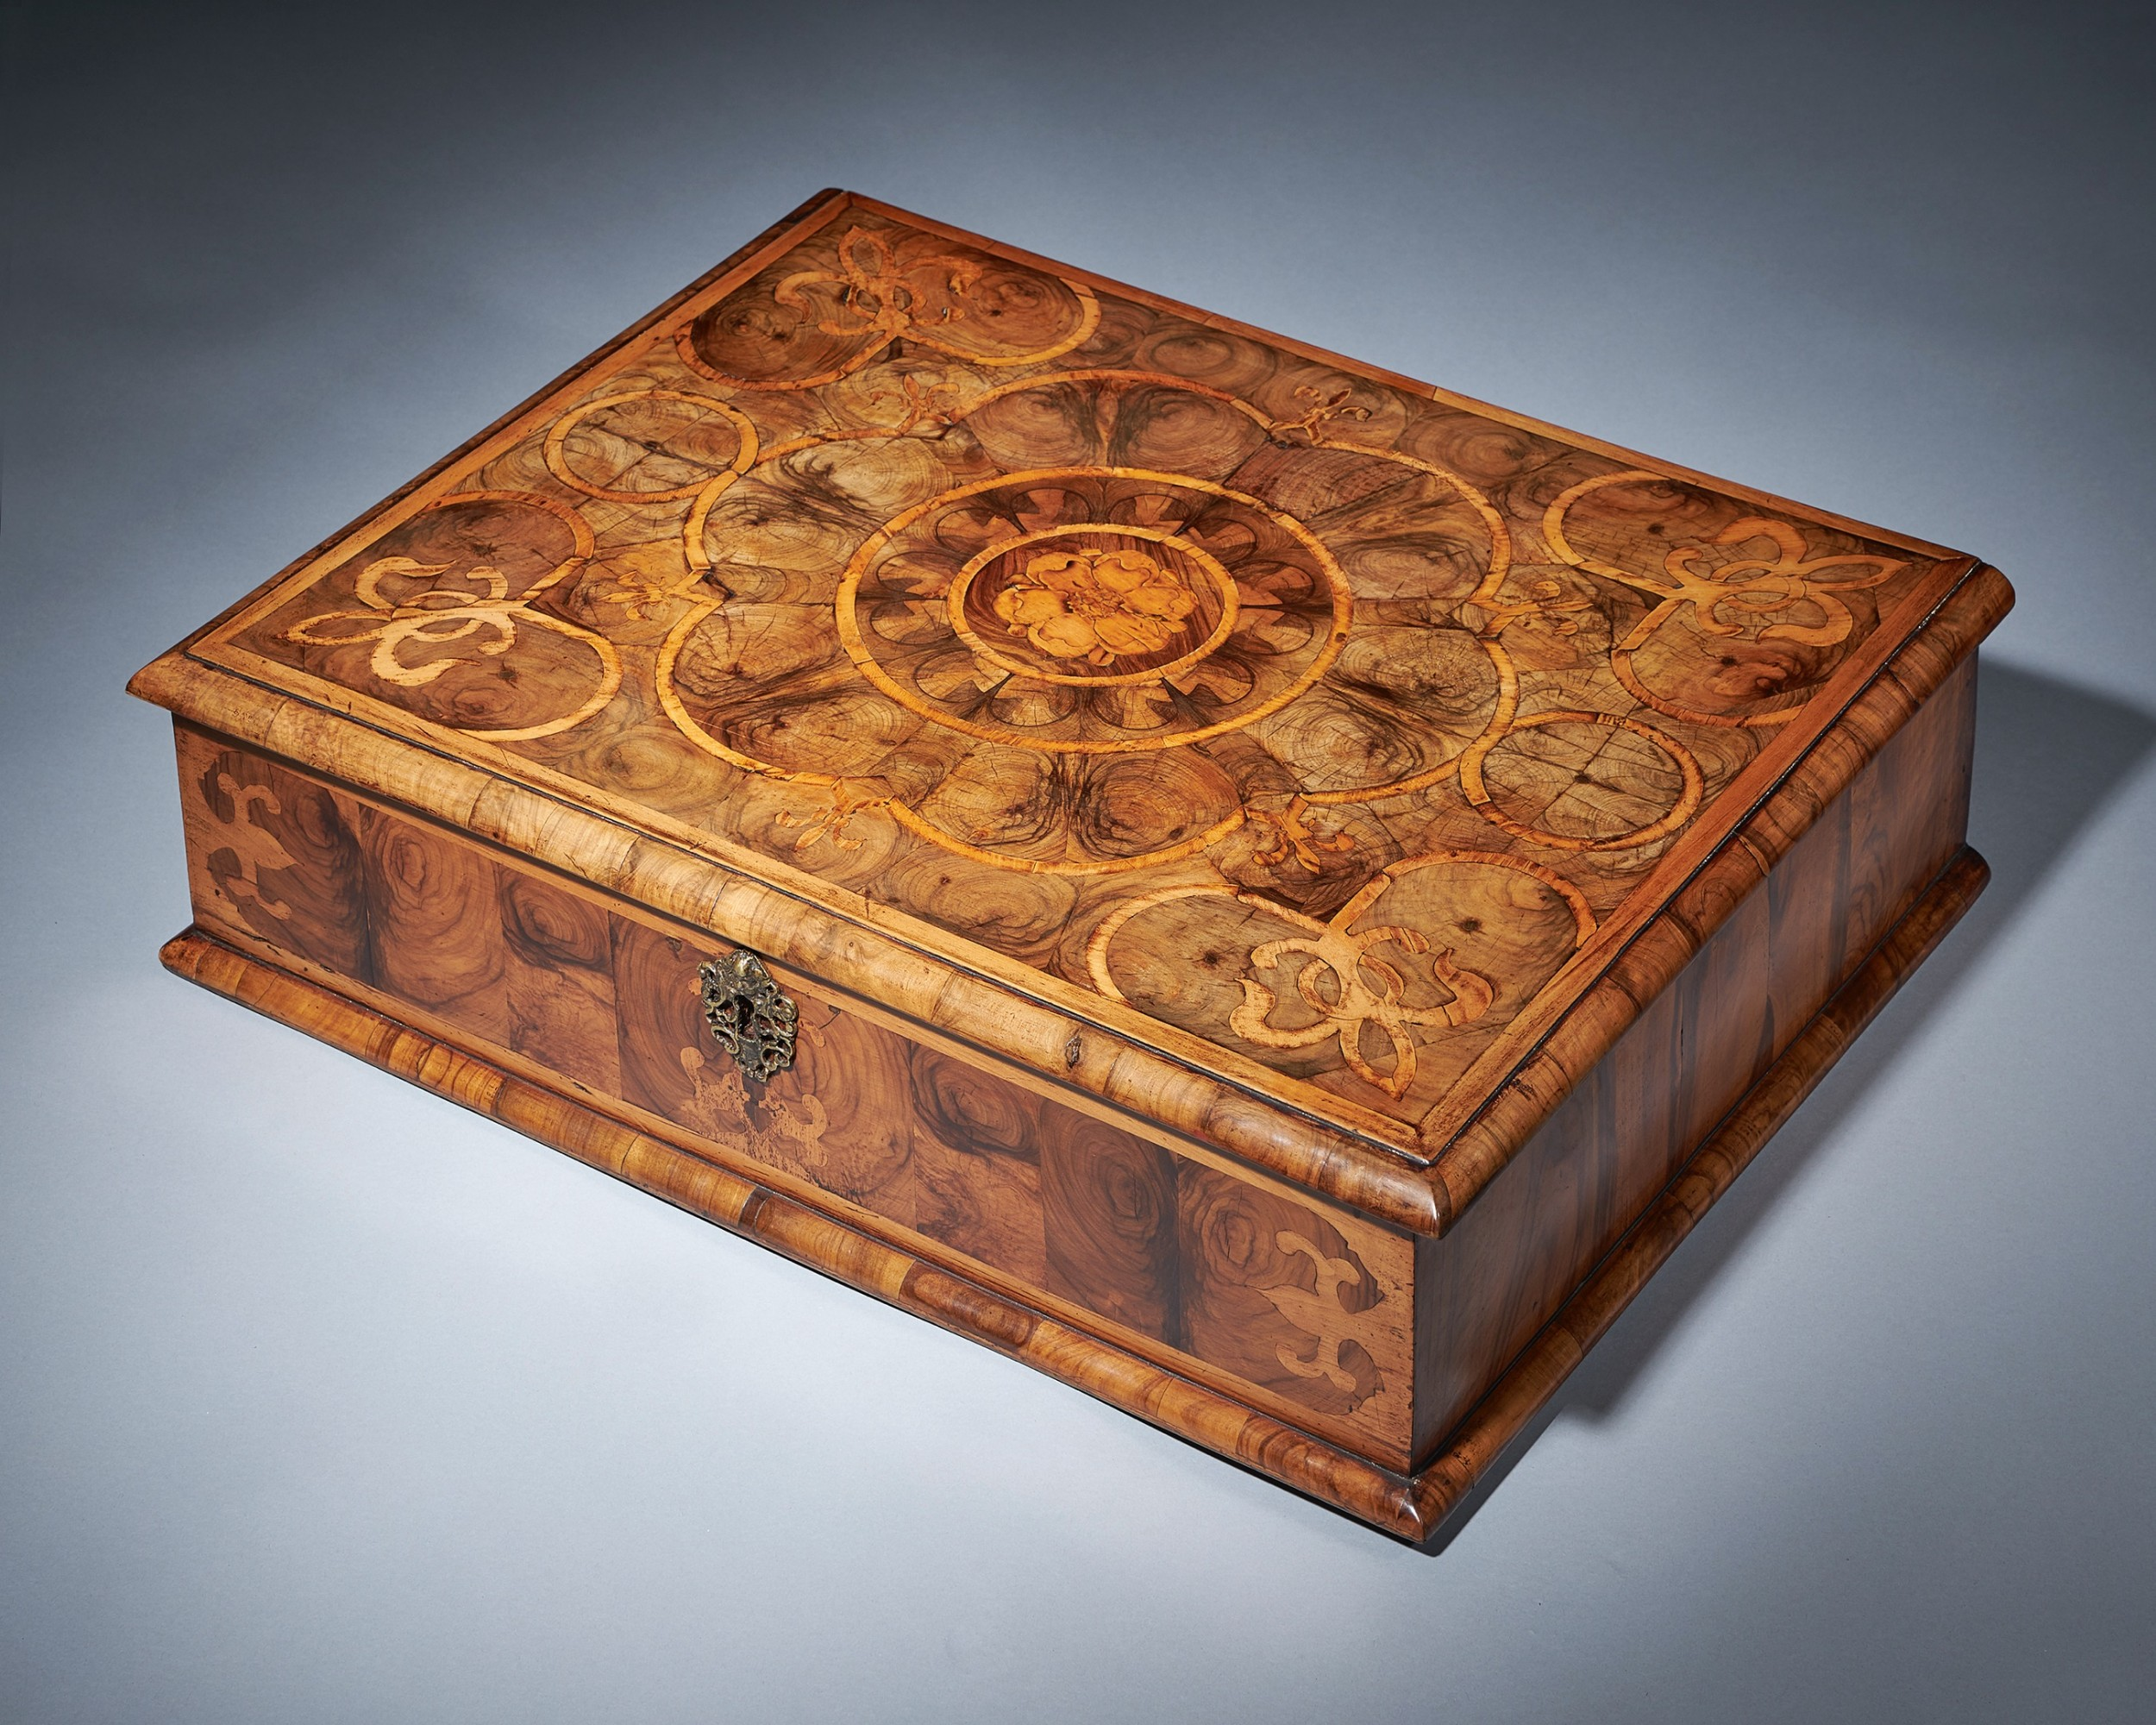 an exceptional blond olive oyster lacebox of large scale from the reign of charles ii circa 16751685